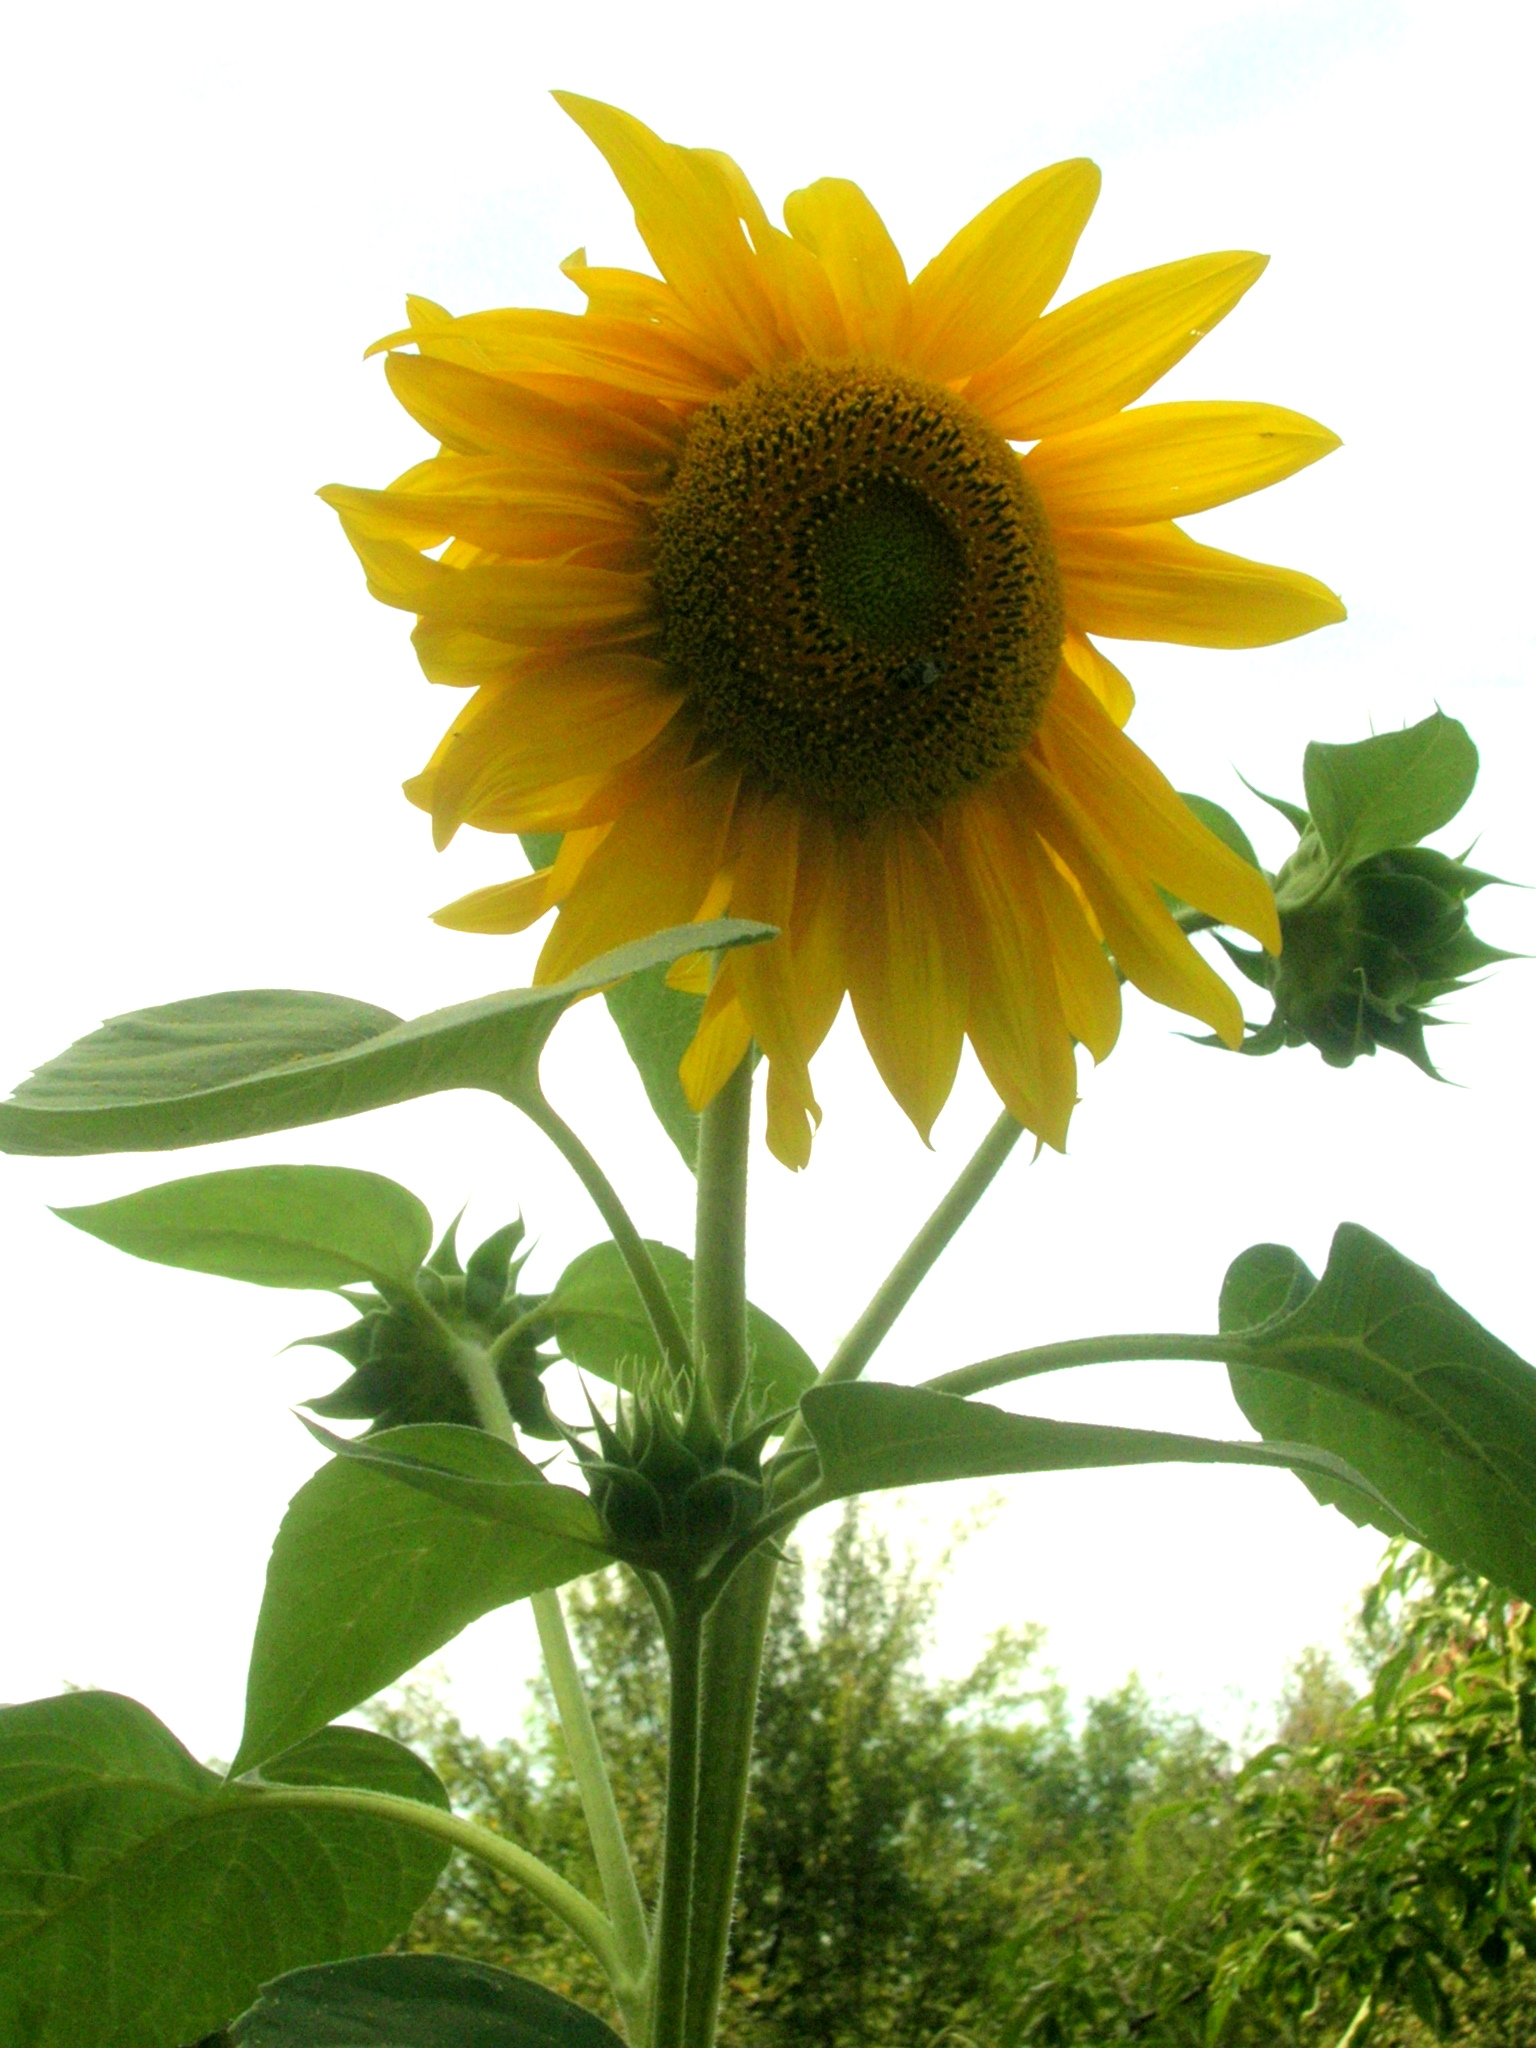 http://upload.wikimedia.org/wikipedia/commons/6/67/Girasol.JPG